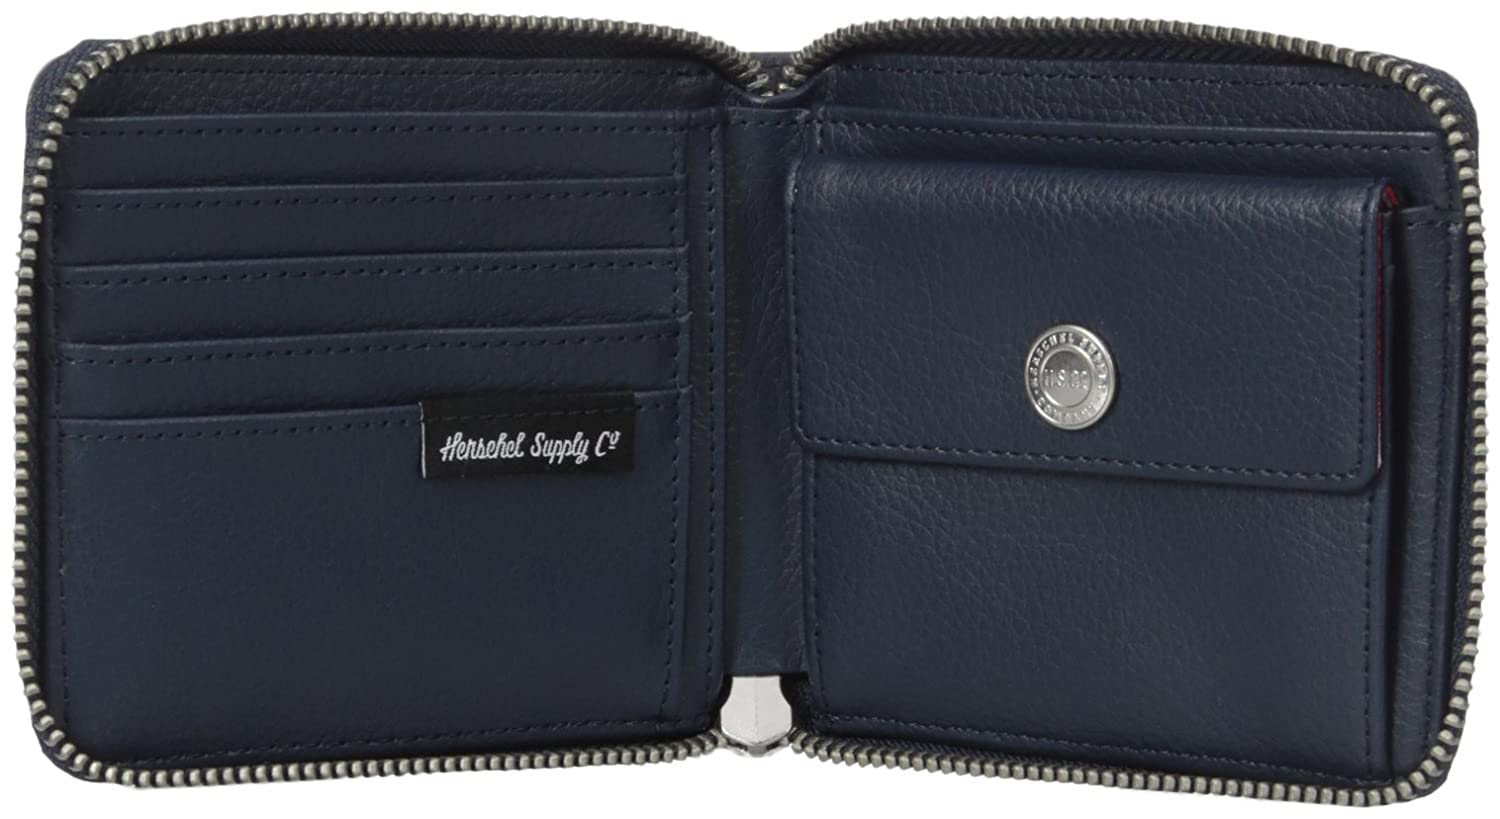 Herschel Supply Co. Men's Walt Leather Rfid Wallet, Navy Pebbled Leather  Rfid, One Size at Amazon Men's Clothing store: